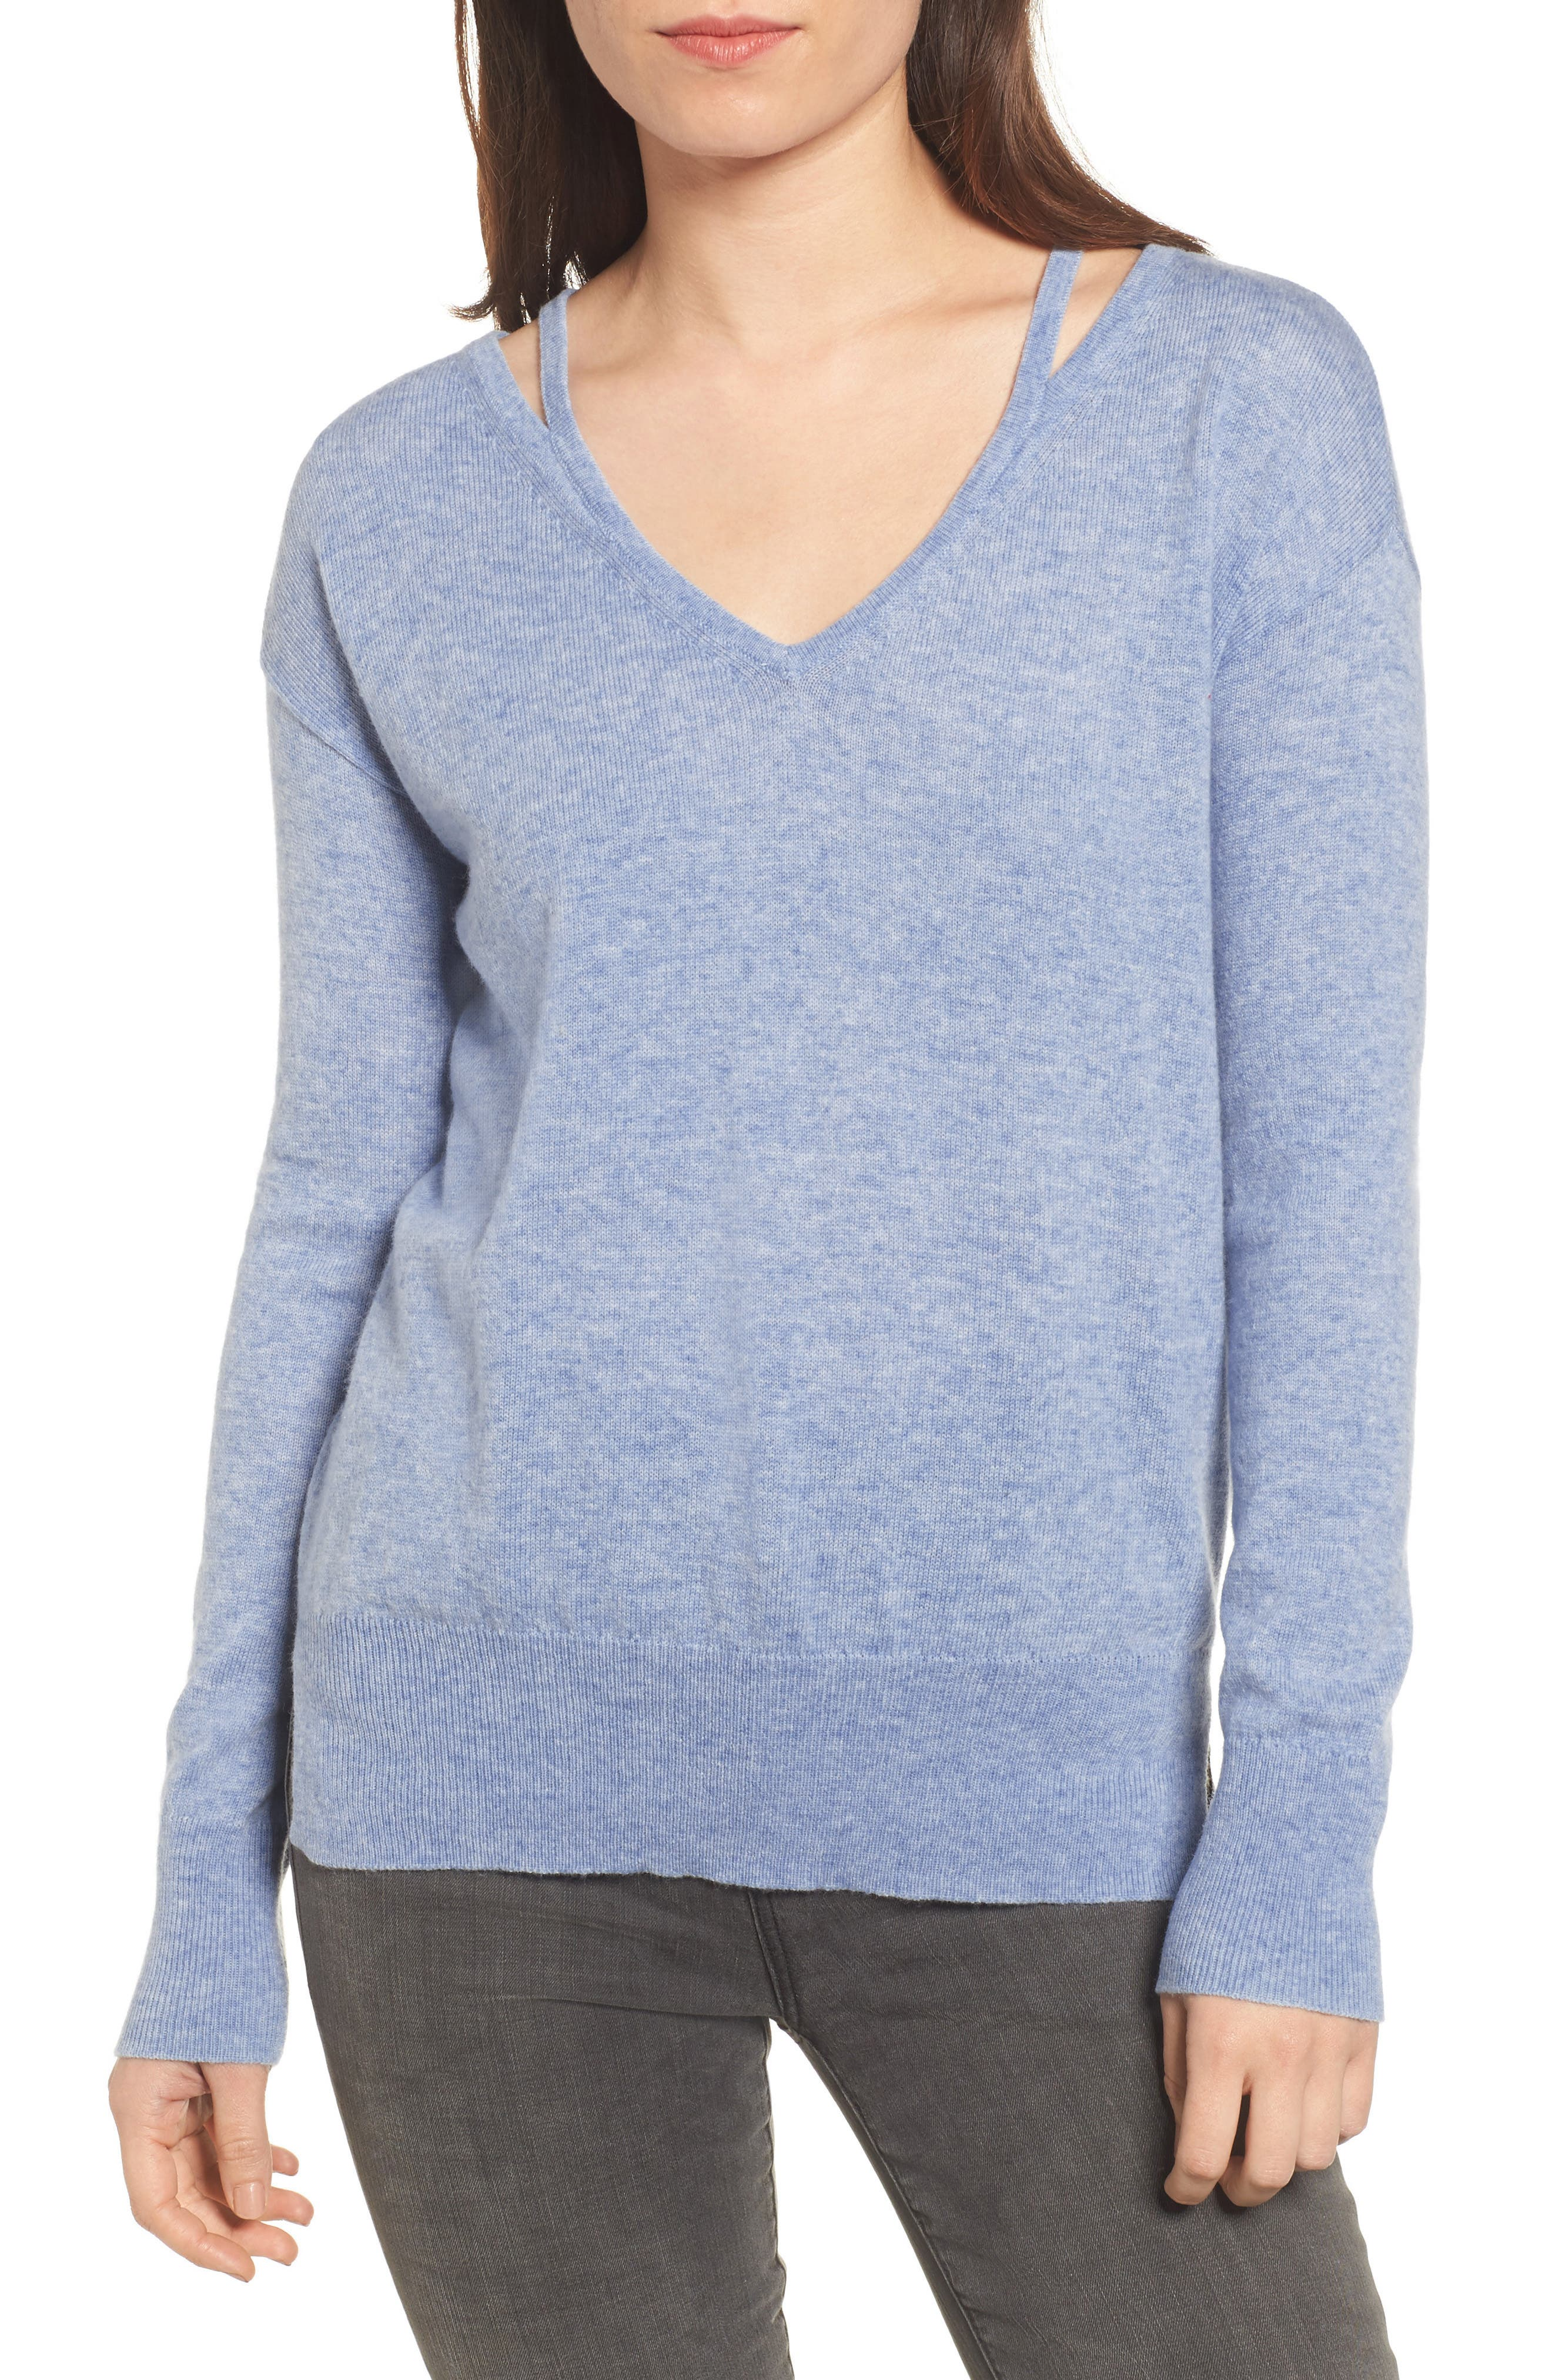 Kenley Wool & Cashmere Sweater,                         Main,                         color, 400